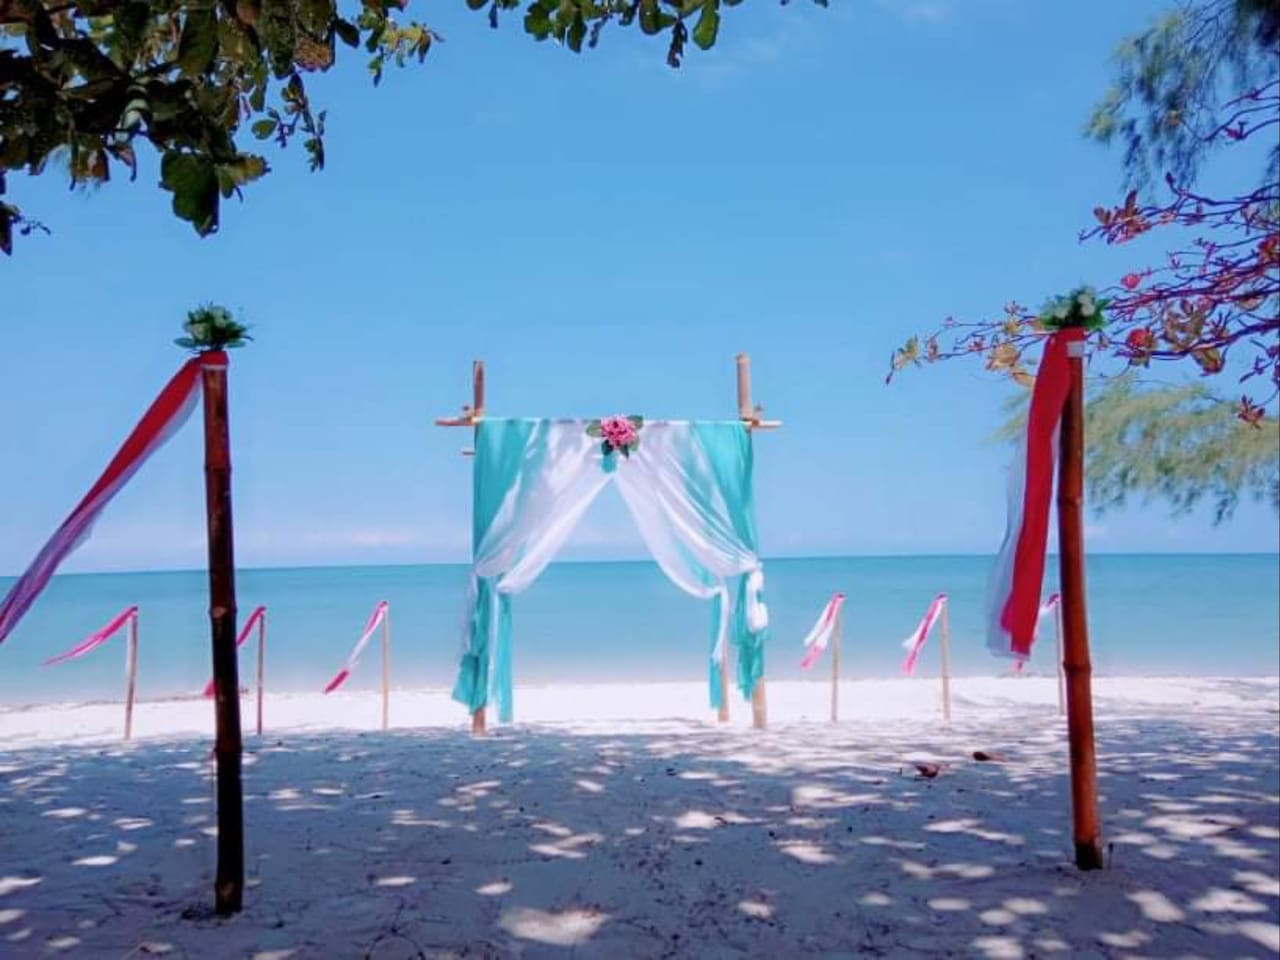 Bintan Brzee Beach (BBB) is privat beach, Free wifi. wide beach 50m x 300m long from the street. By taxi from  lagoi ferry terminal 1 hour. There are 5 bengelows + 1 restaurant. We Can serve wedding beach, event, outbond, dinner at beach, barbecue.